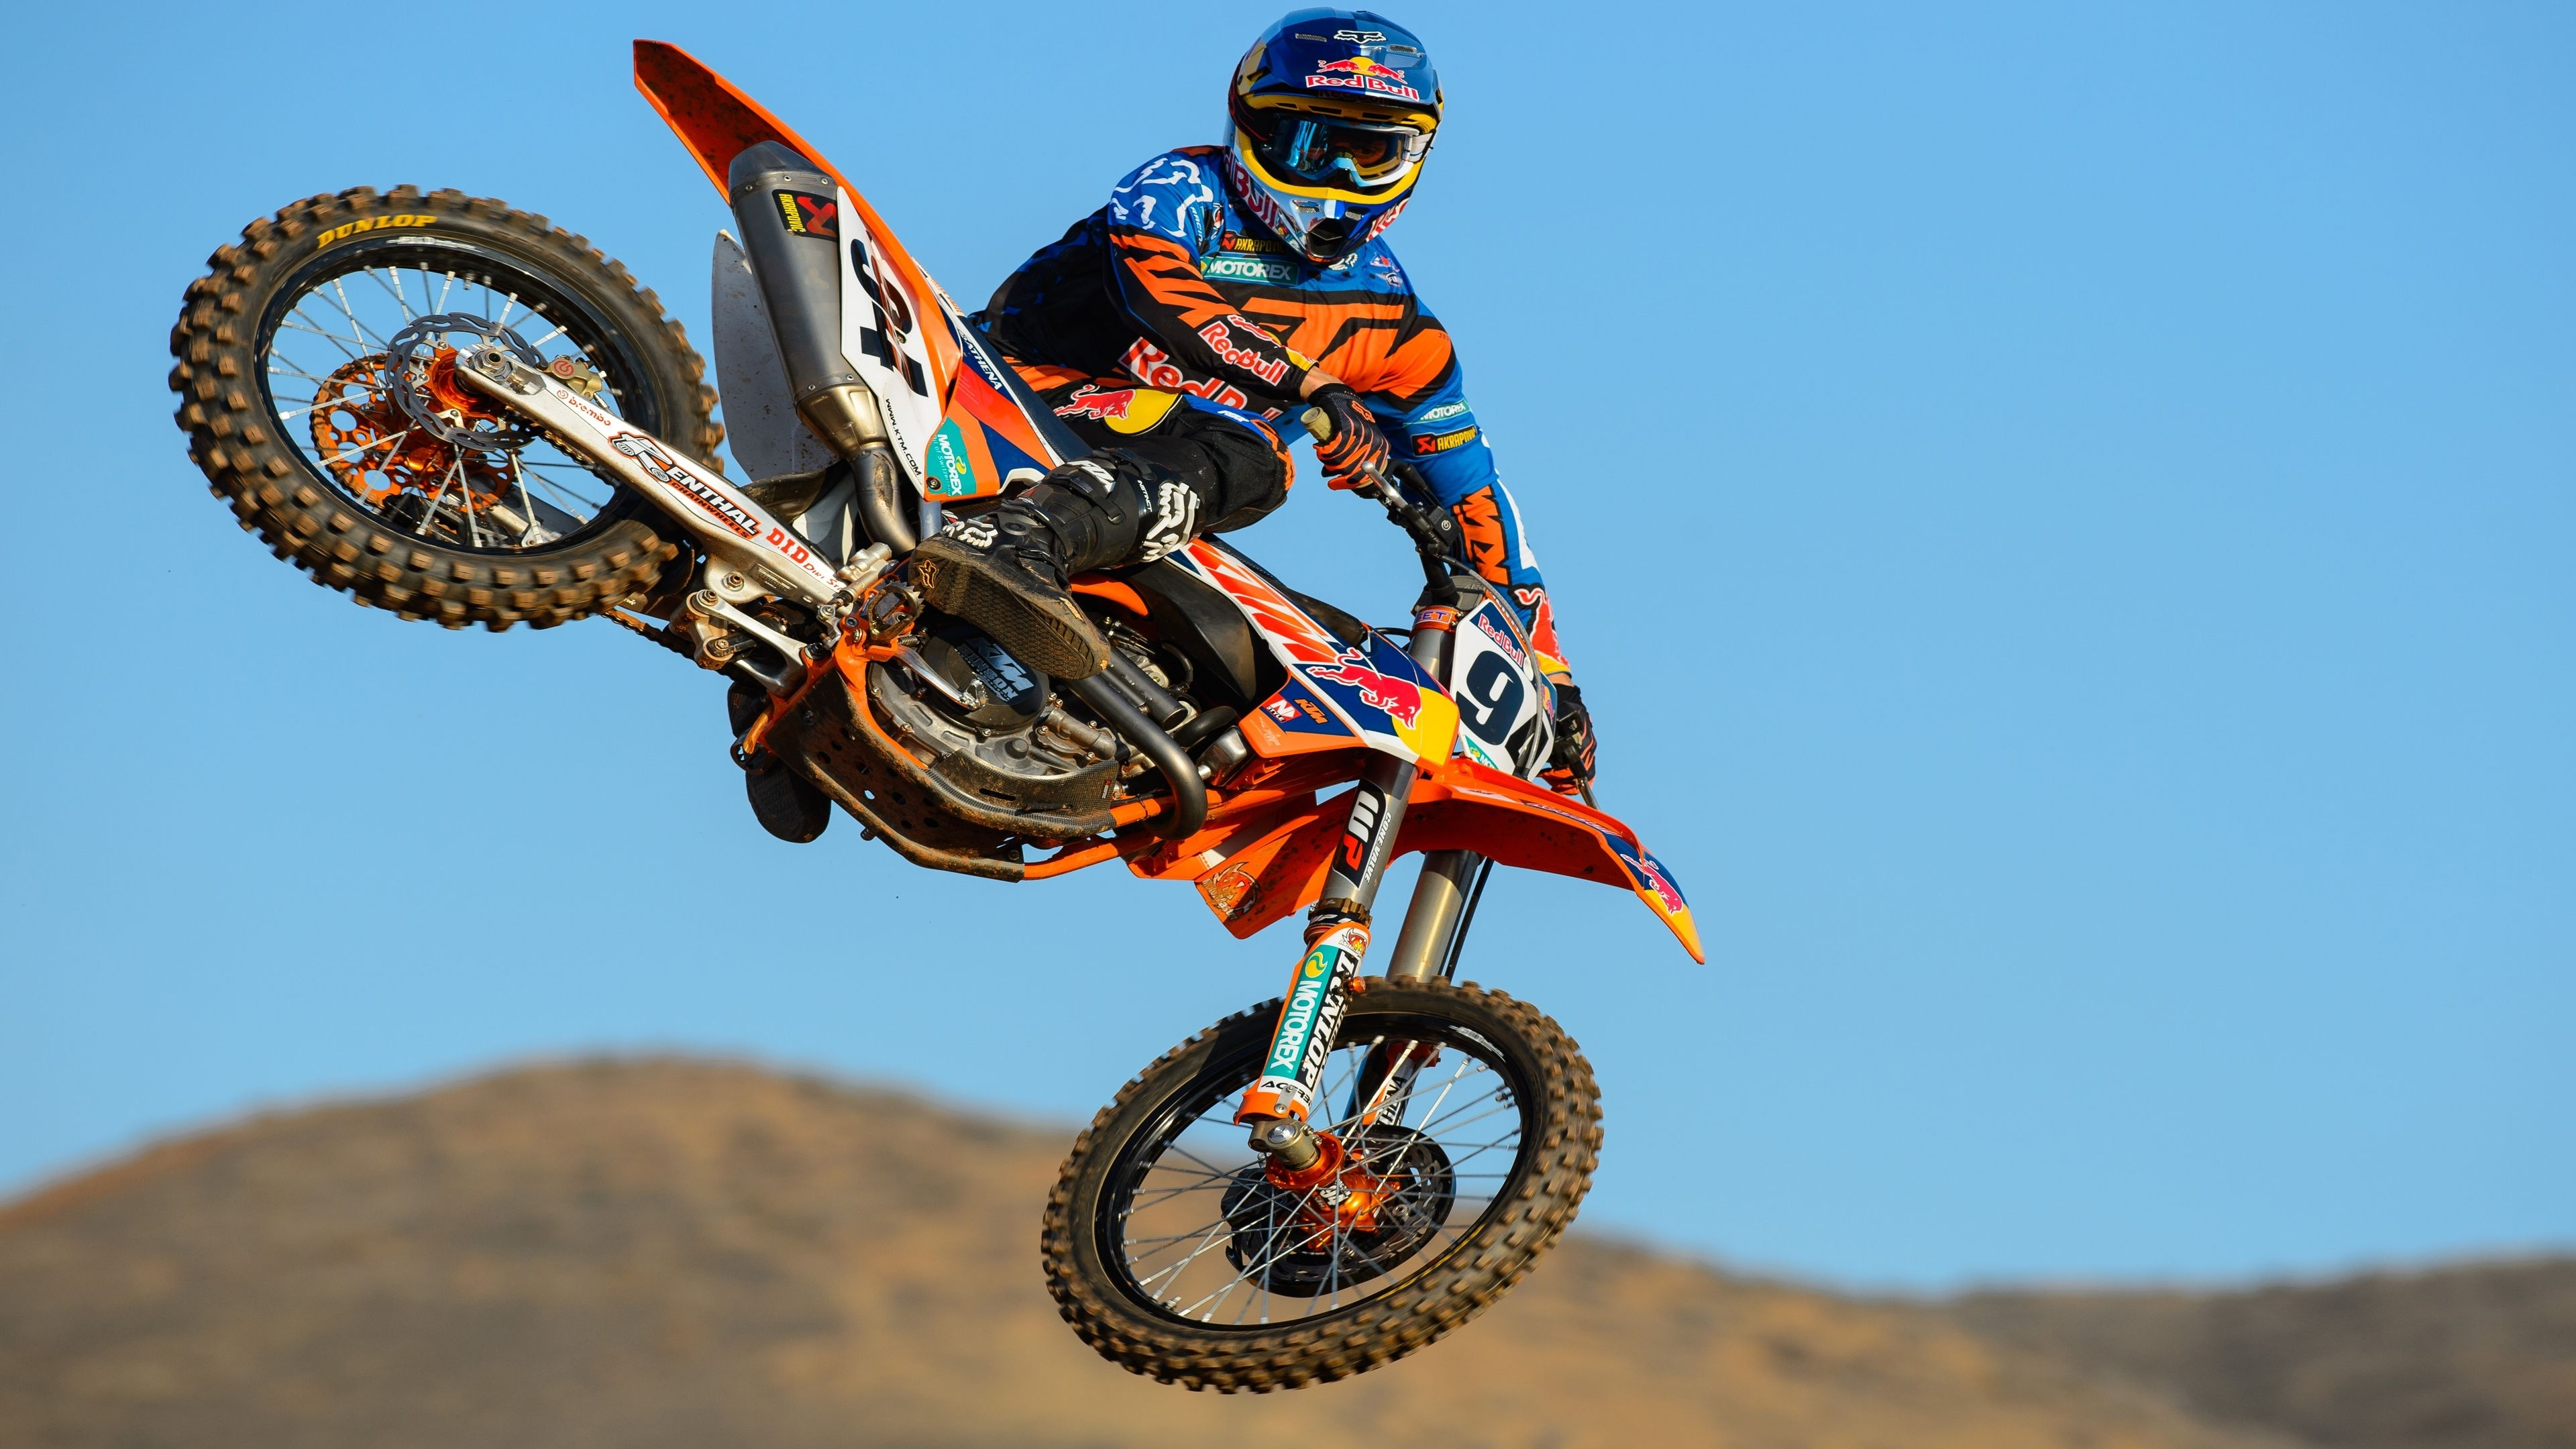 ktm motocross hd 4k wallpaper | bike | pinterest | motocross